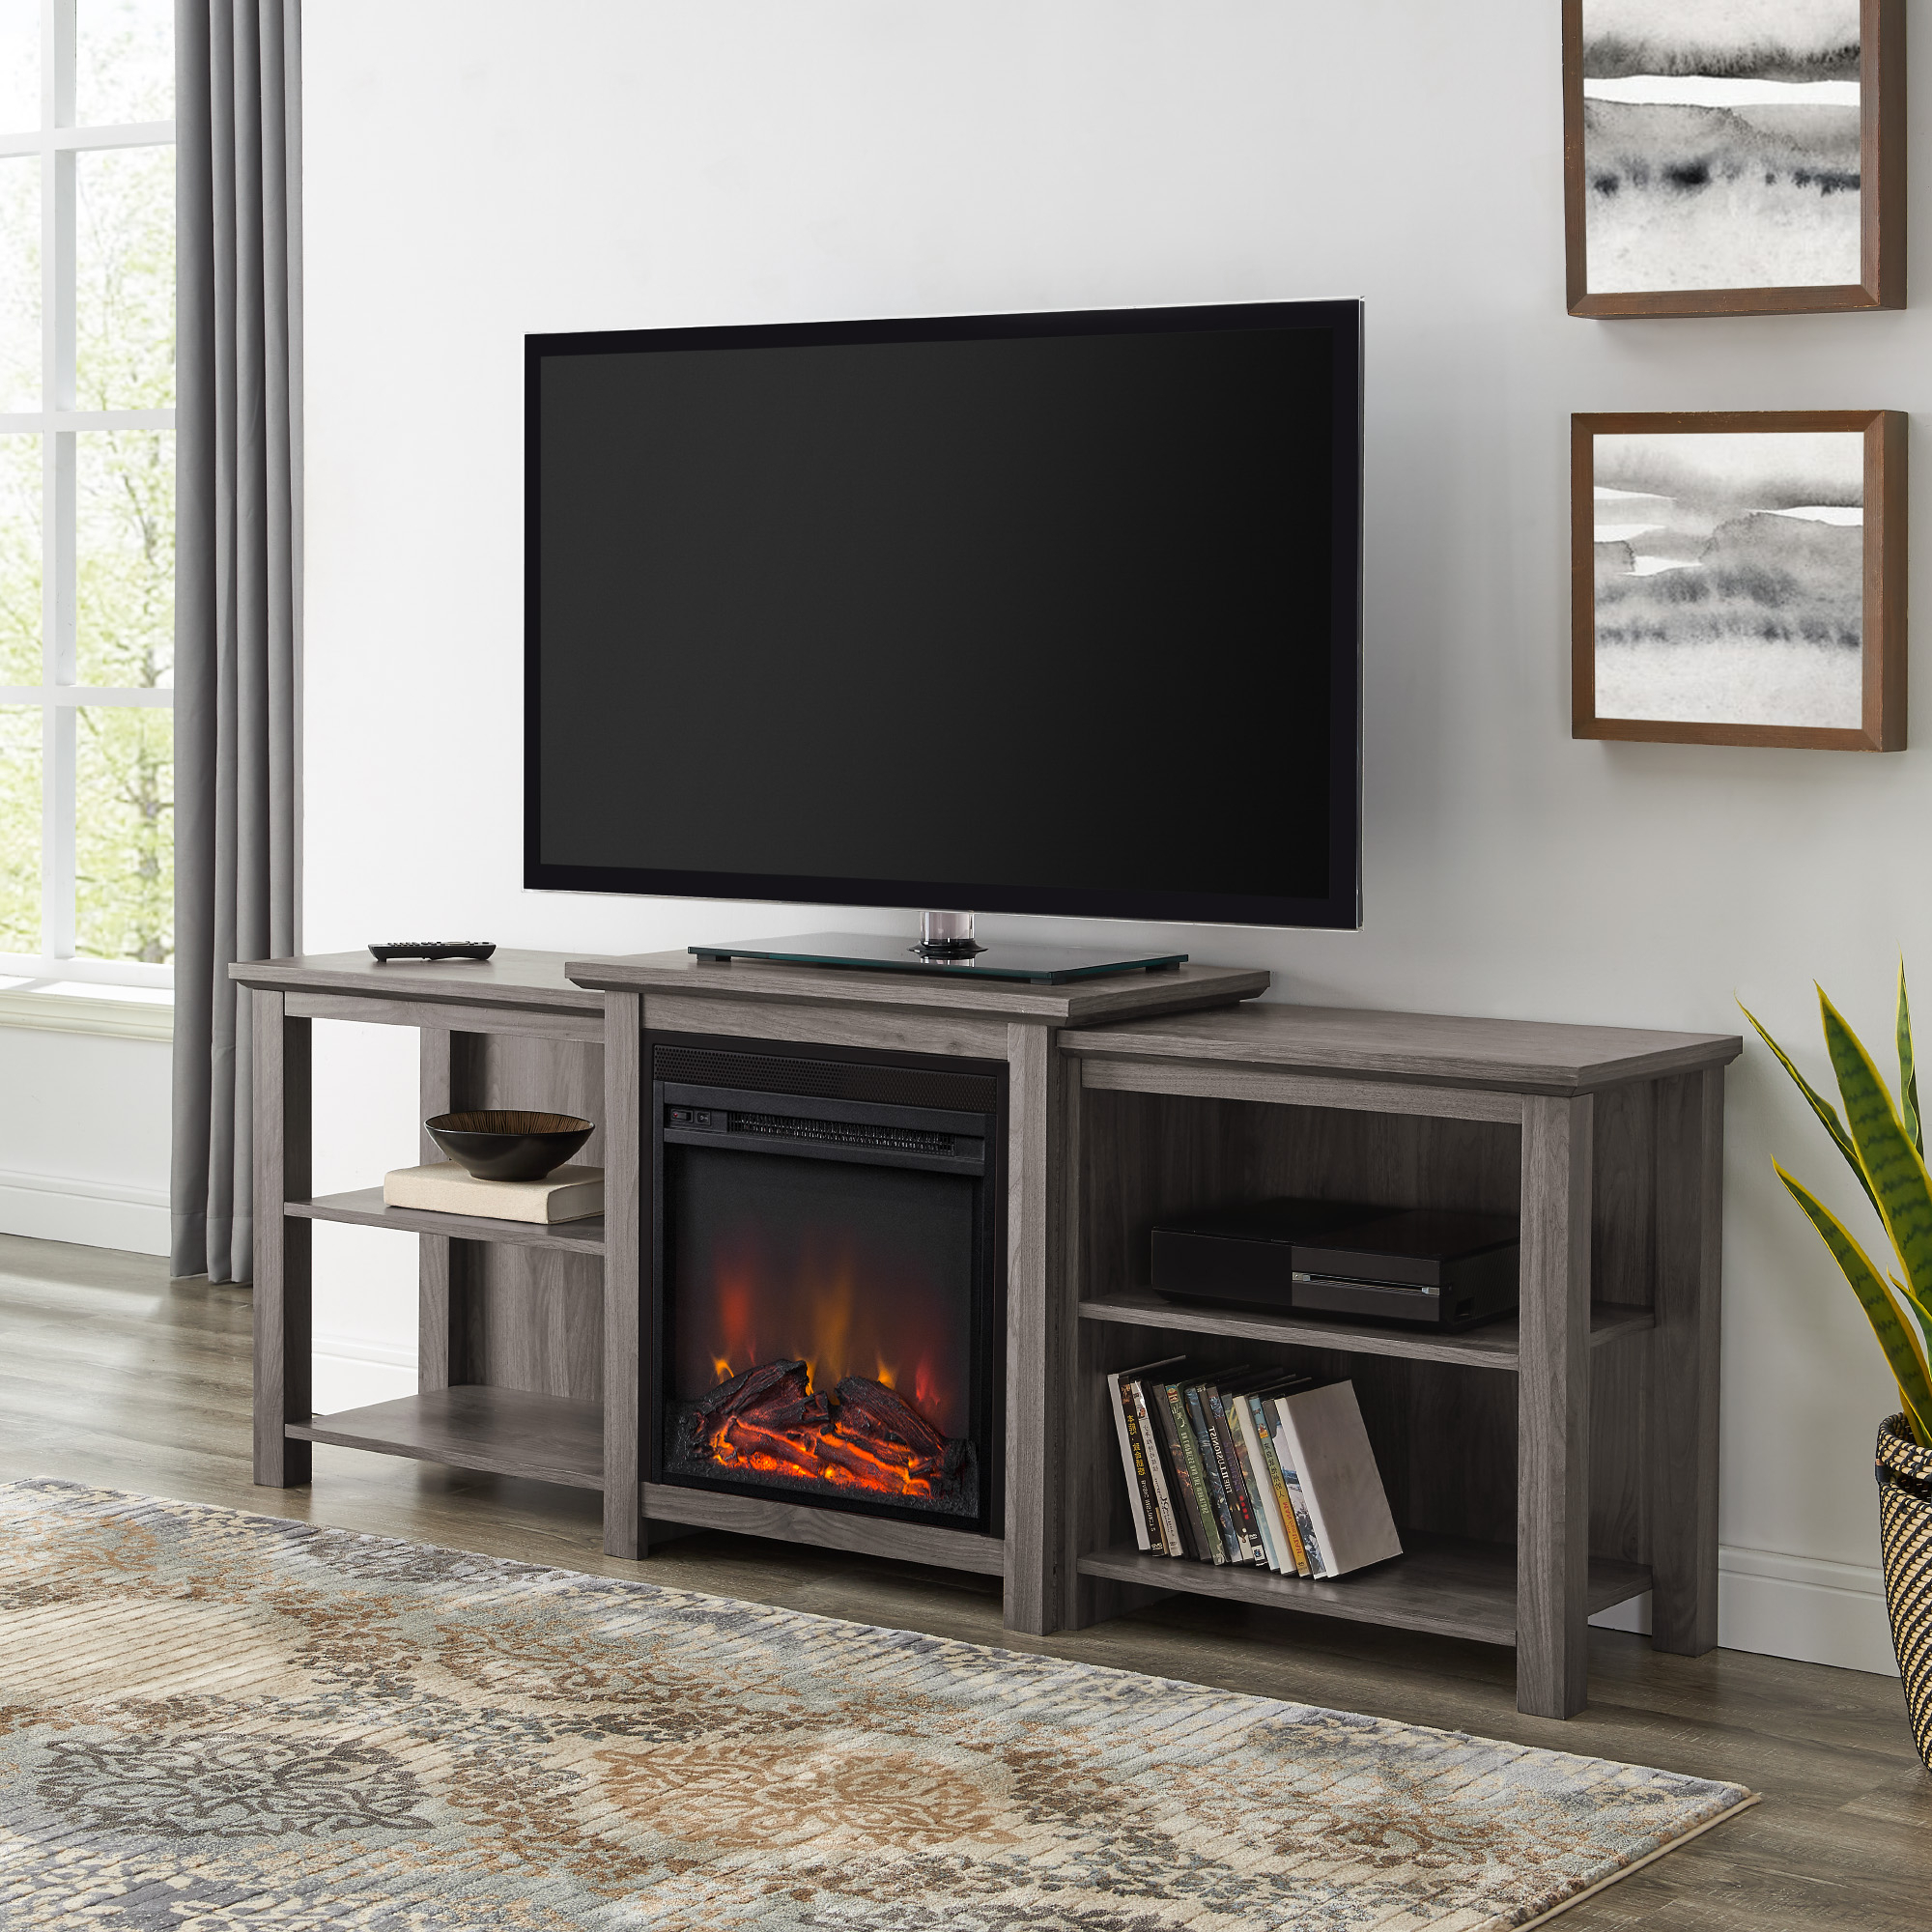 """Manor Park Tiered Fireplace Tv Stand For Tvs Up To 78 For Tenley Tv Stands For Tvs Up To 78"""" (View 2 of 20)"""